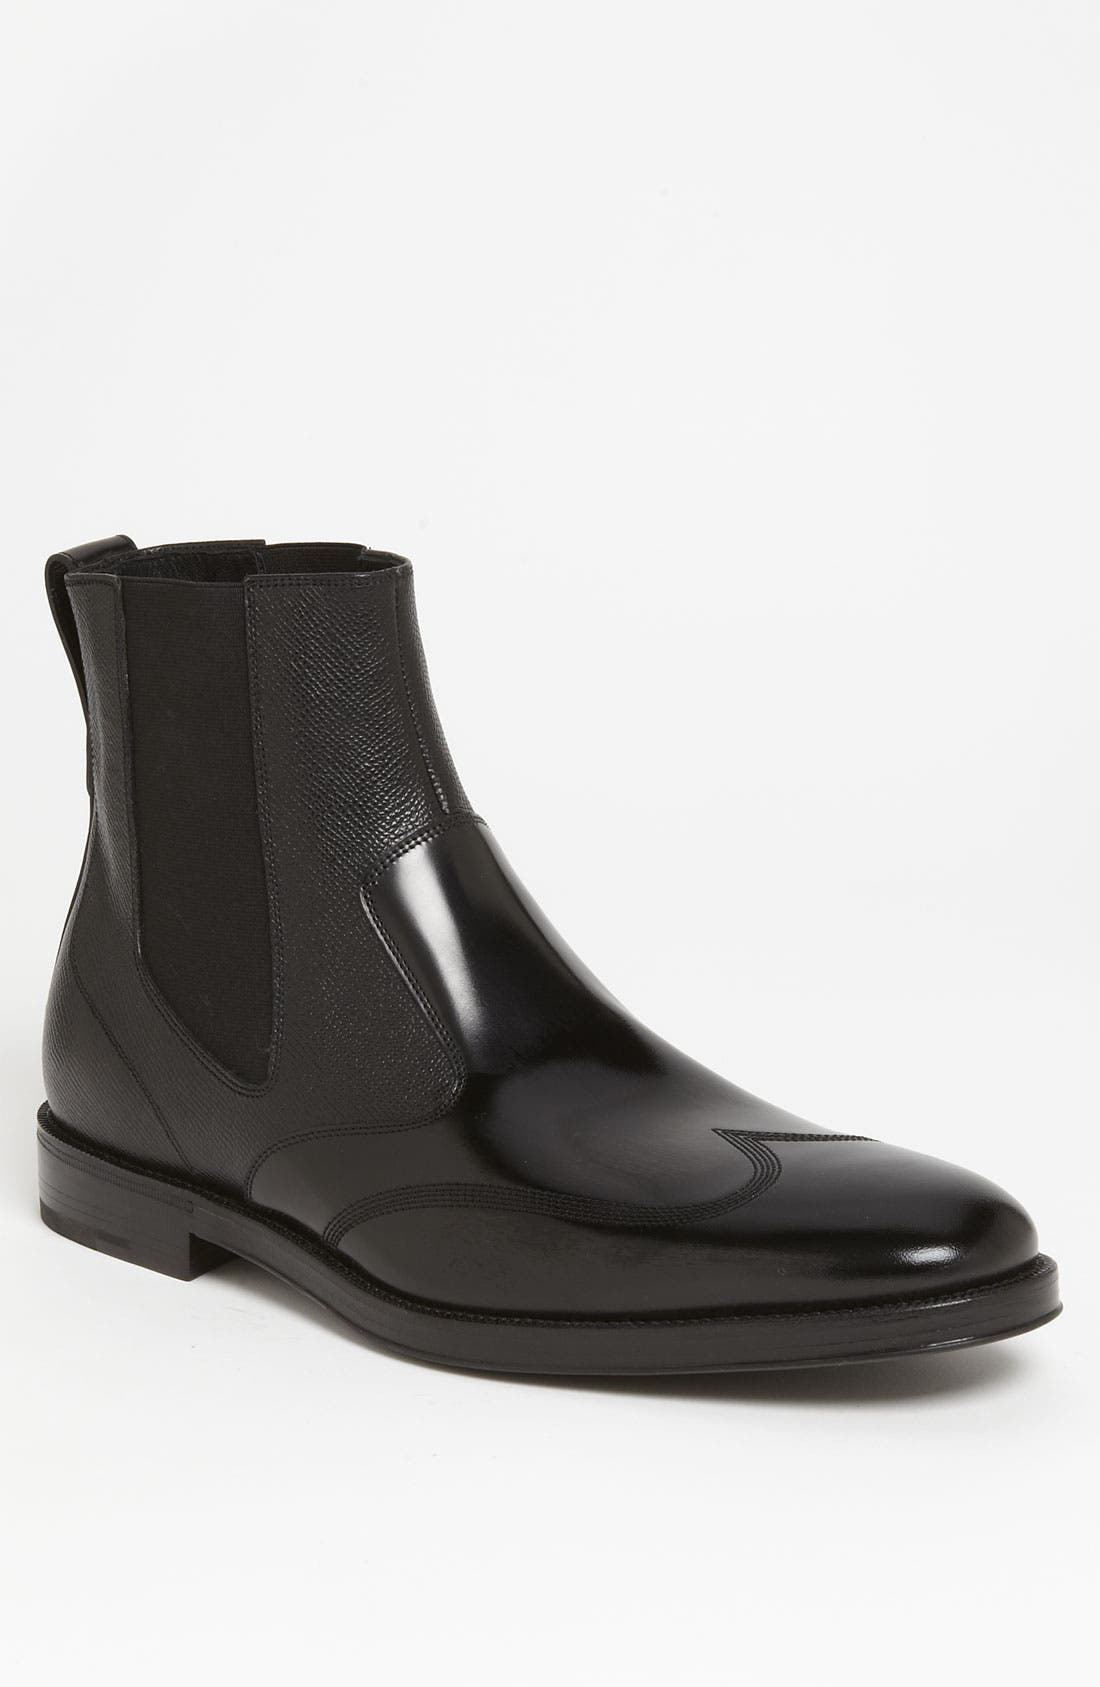 Alternate Image 1 Selected - Salvatore Ferragamo 'Aritz' Wingtip Chelsea Boot